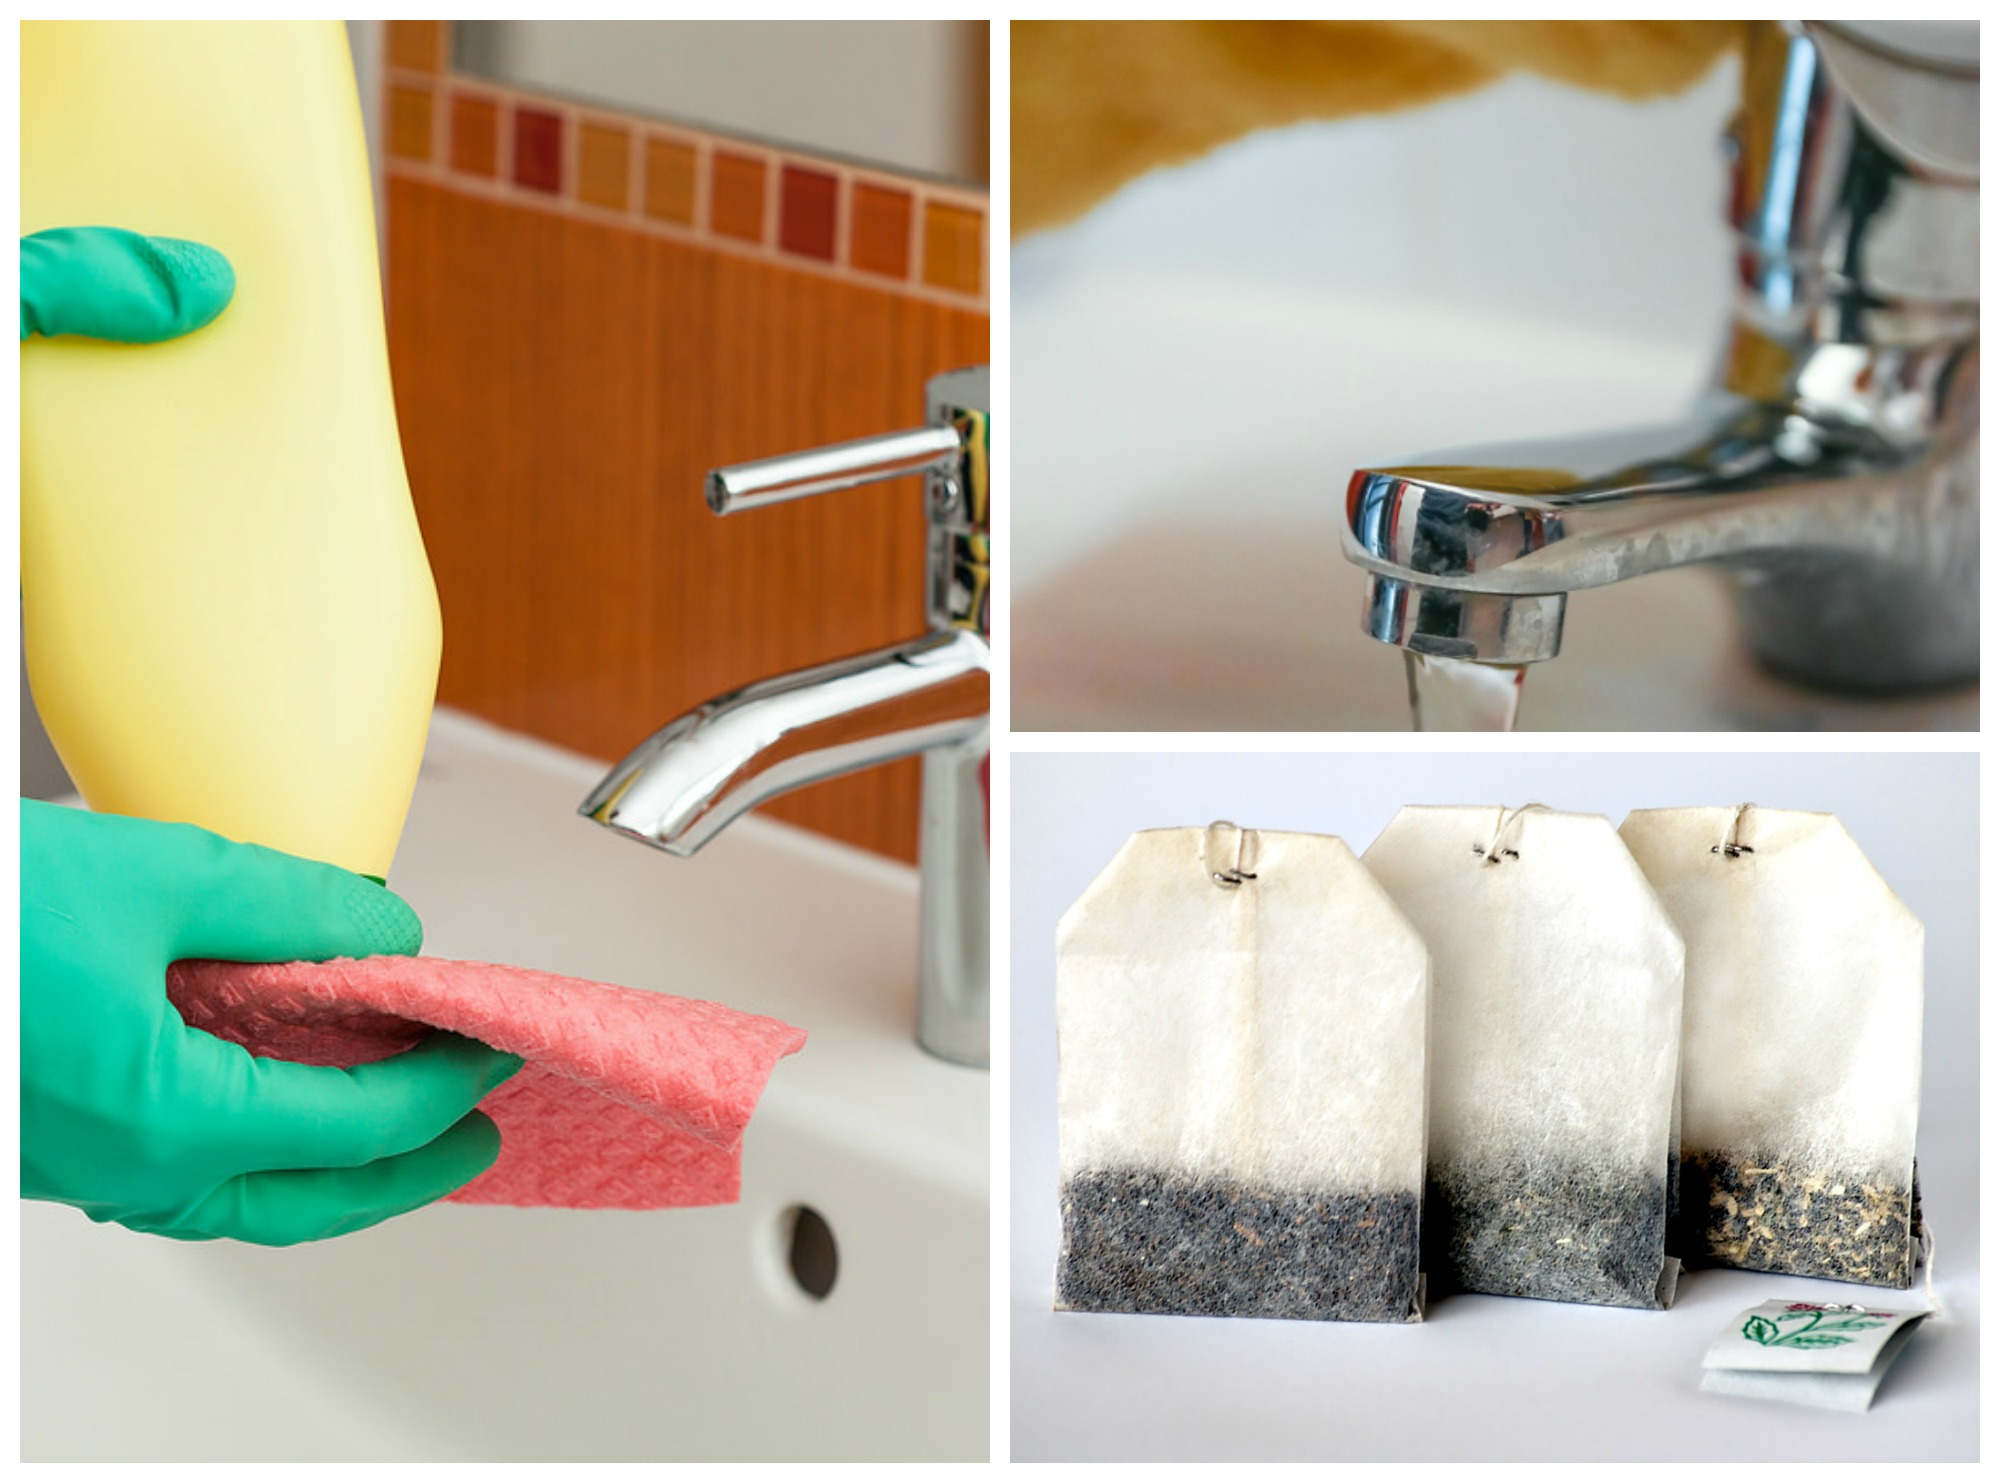 7 bathroom cleaning hacks that 39 ll make your life so much easier. Black Bedroom Furniture Sets. Home Design Ideas